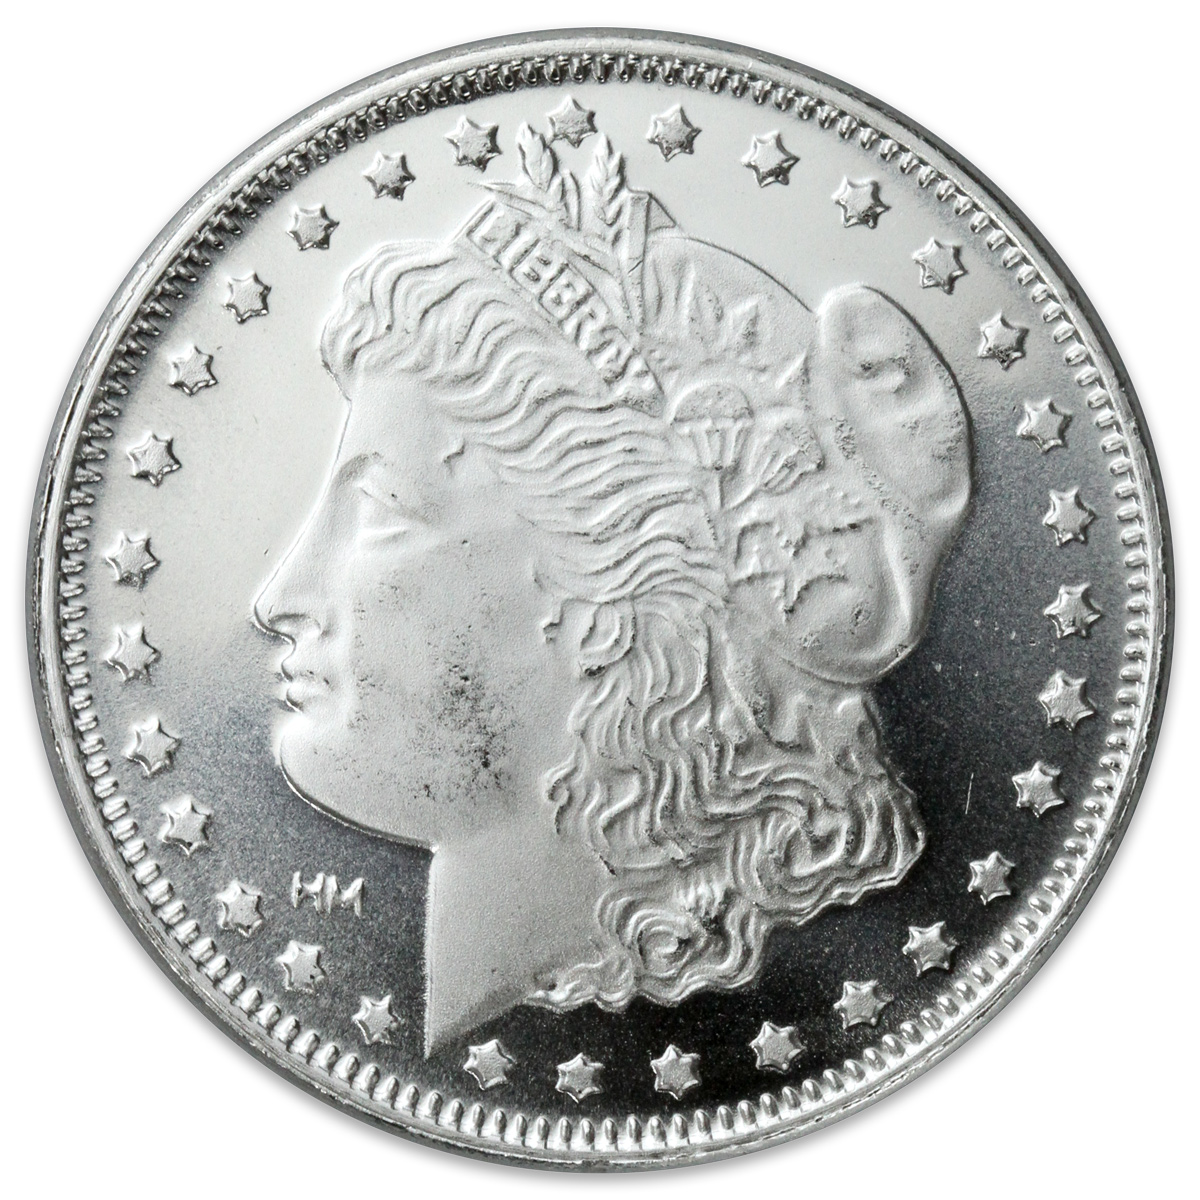 1 oz. Silver Morgan Round